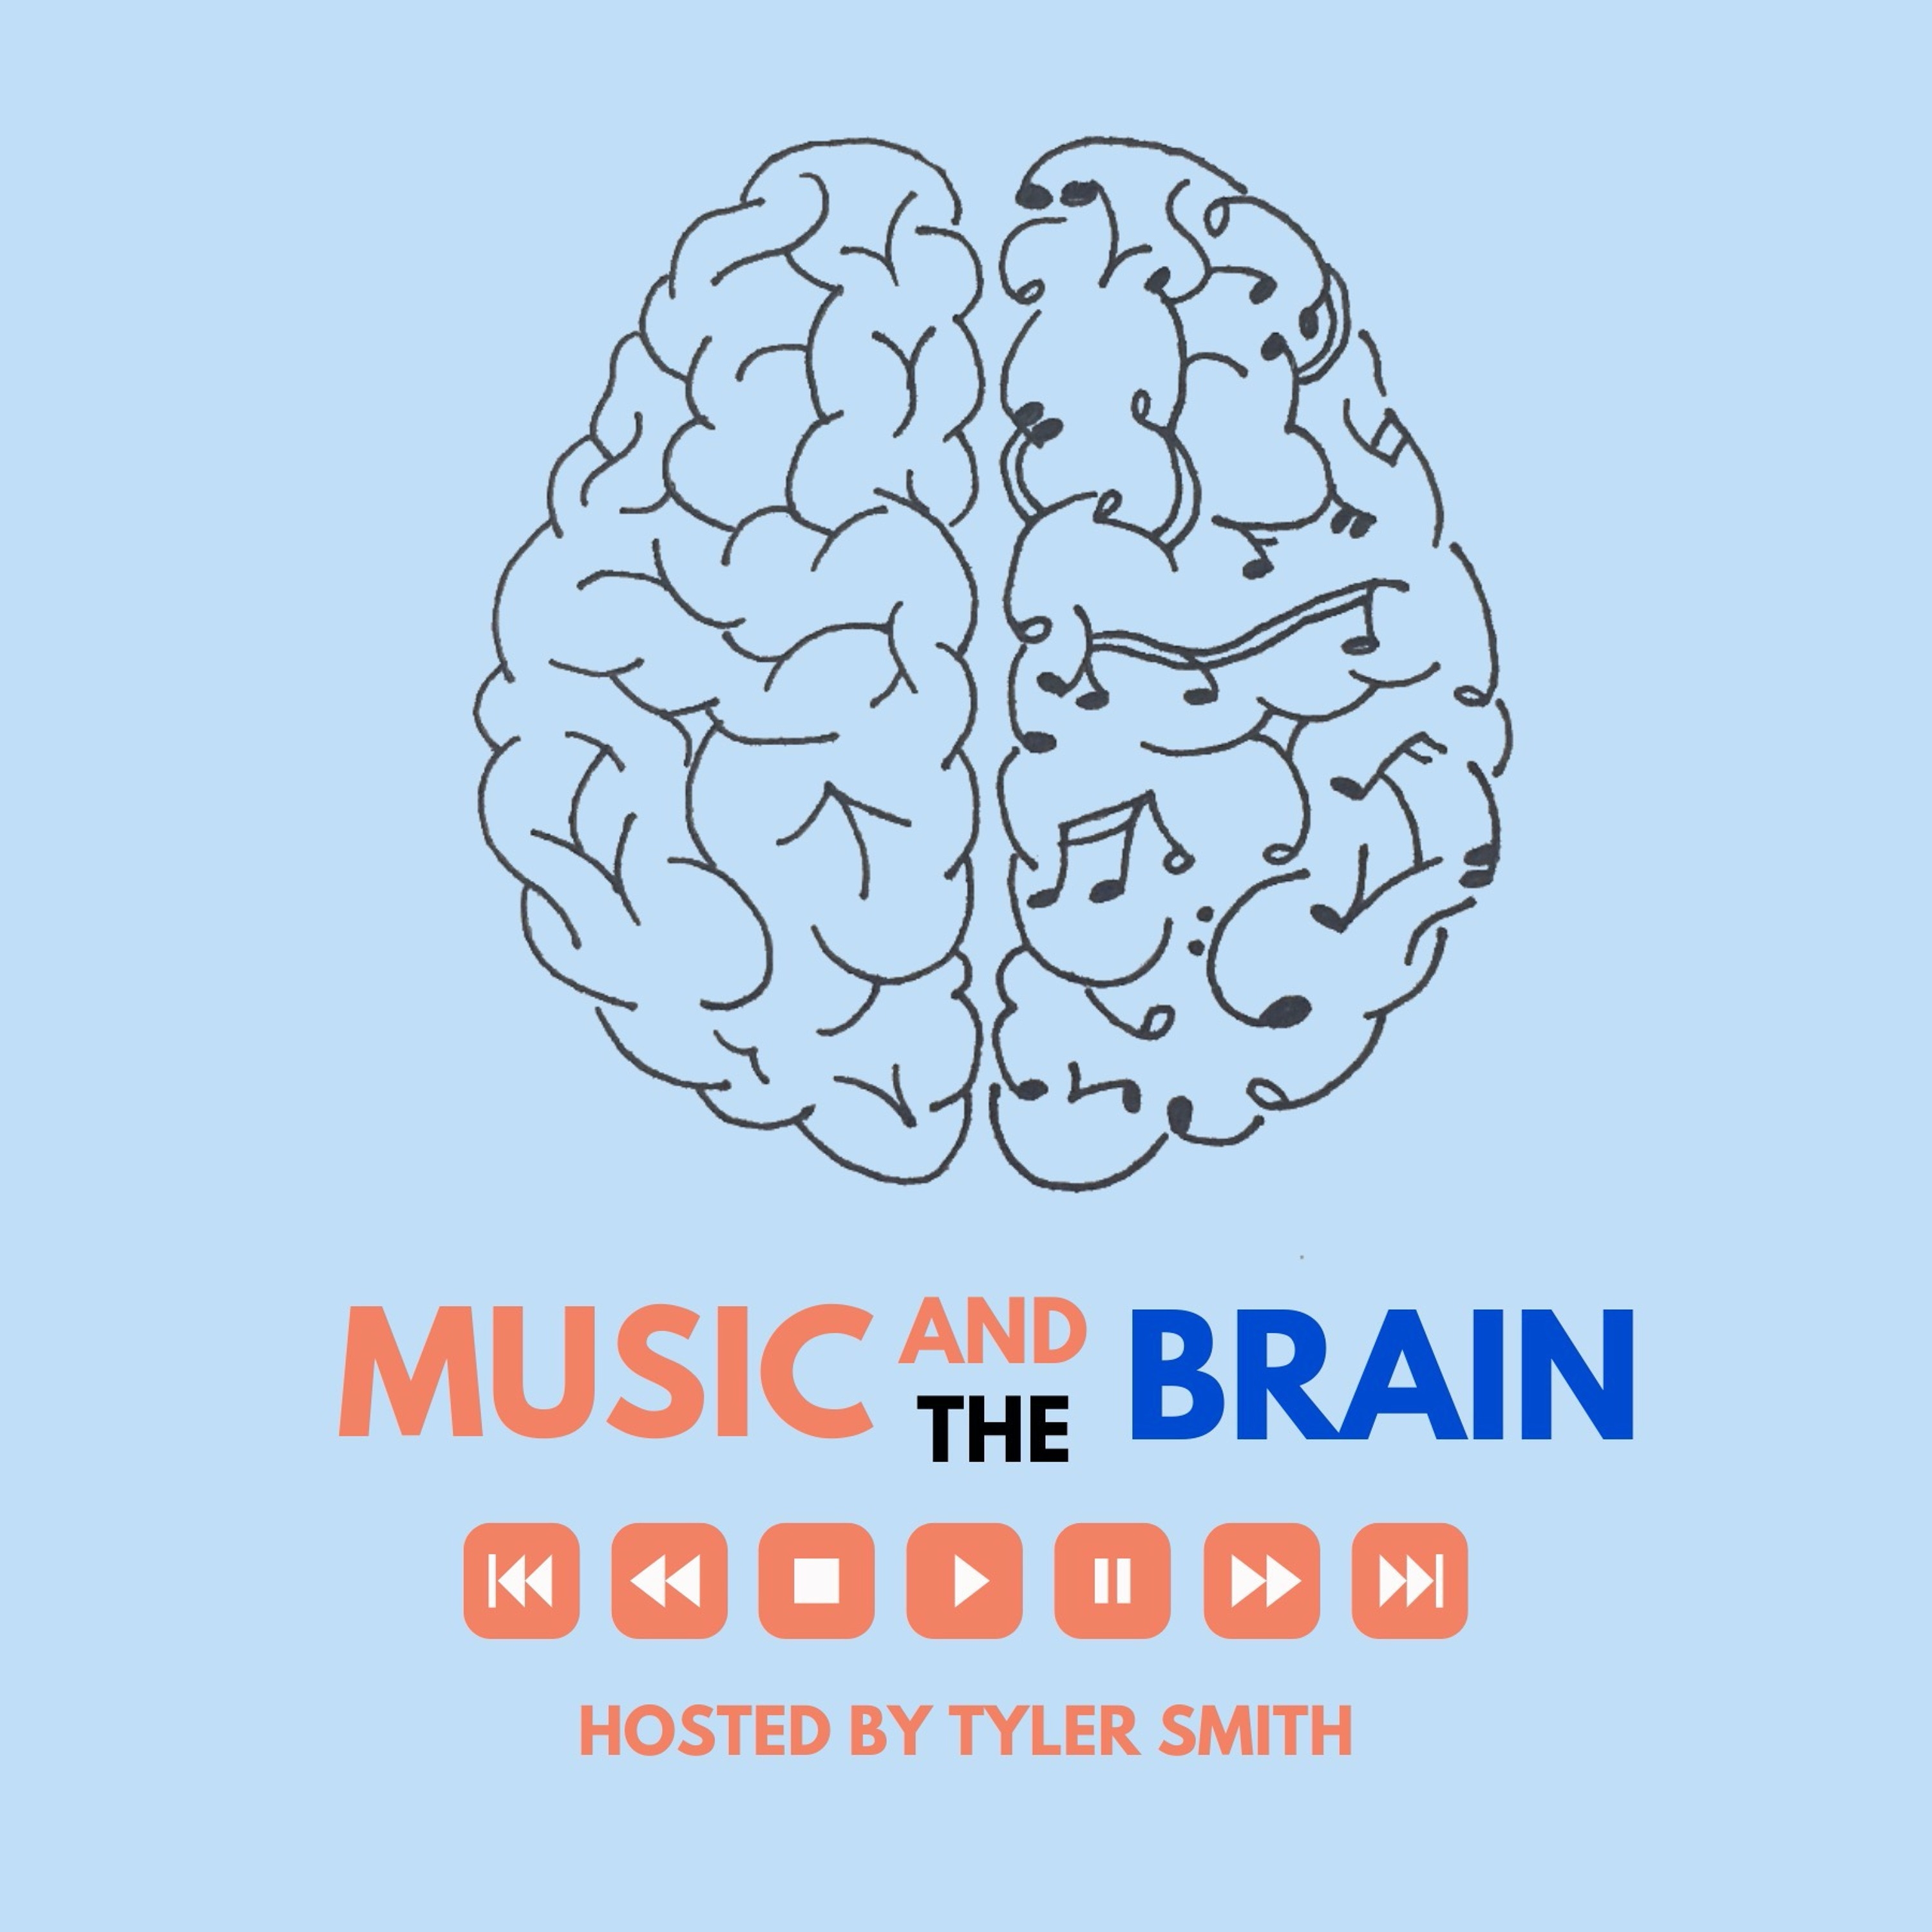 2. How does Music Affect your Brain and Body?